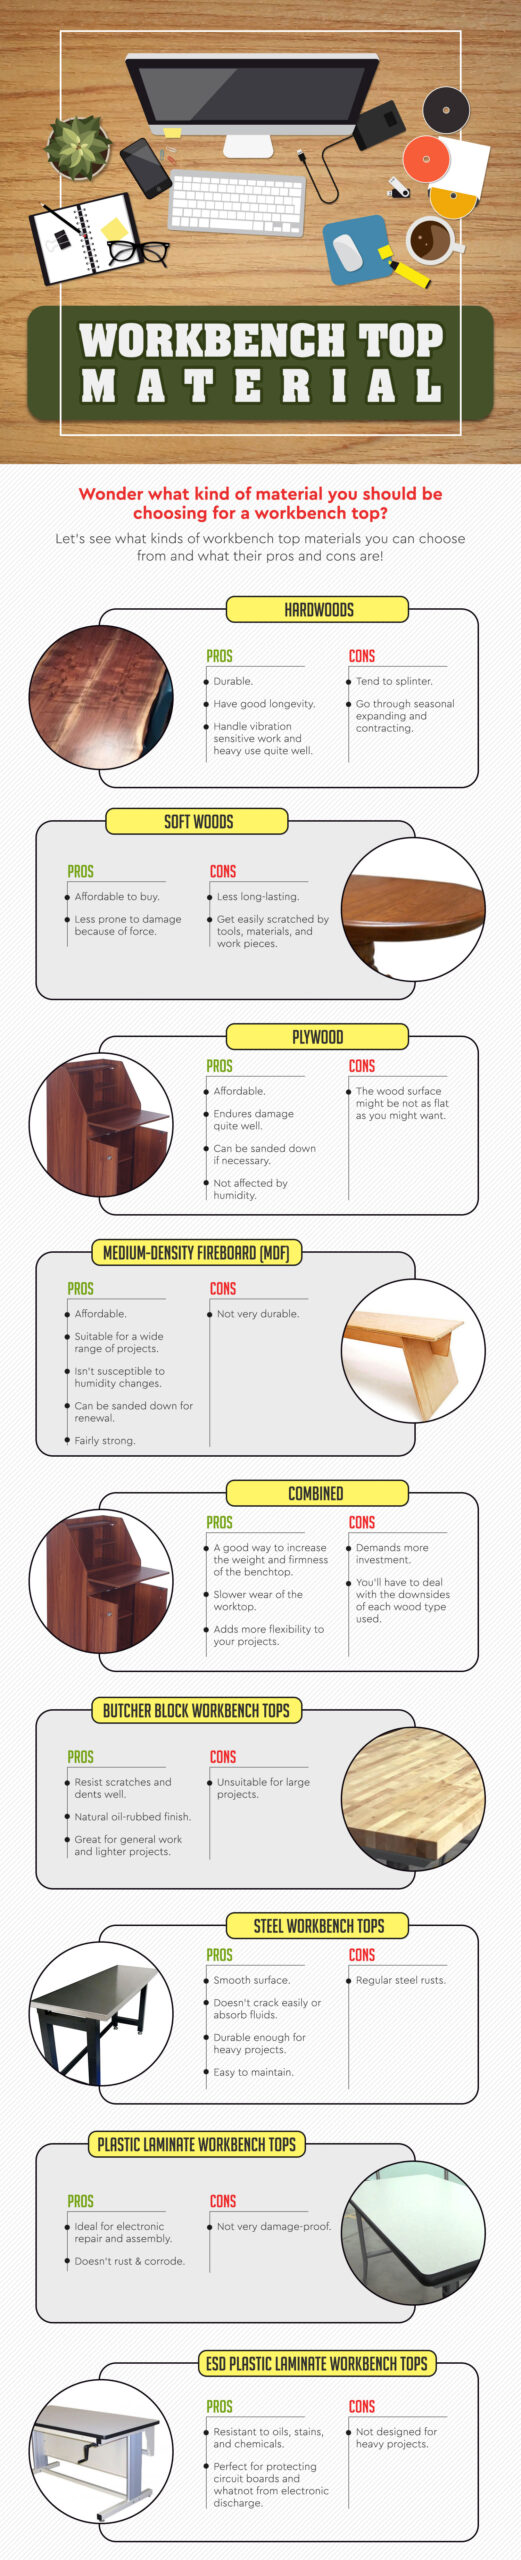 Workbench_top_material_Infographic